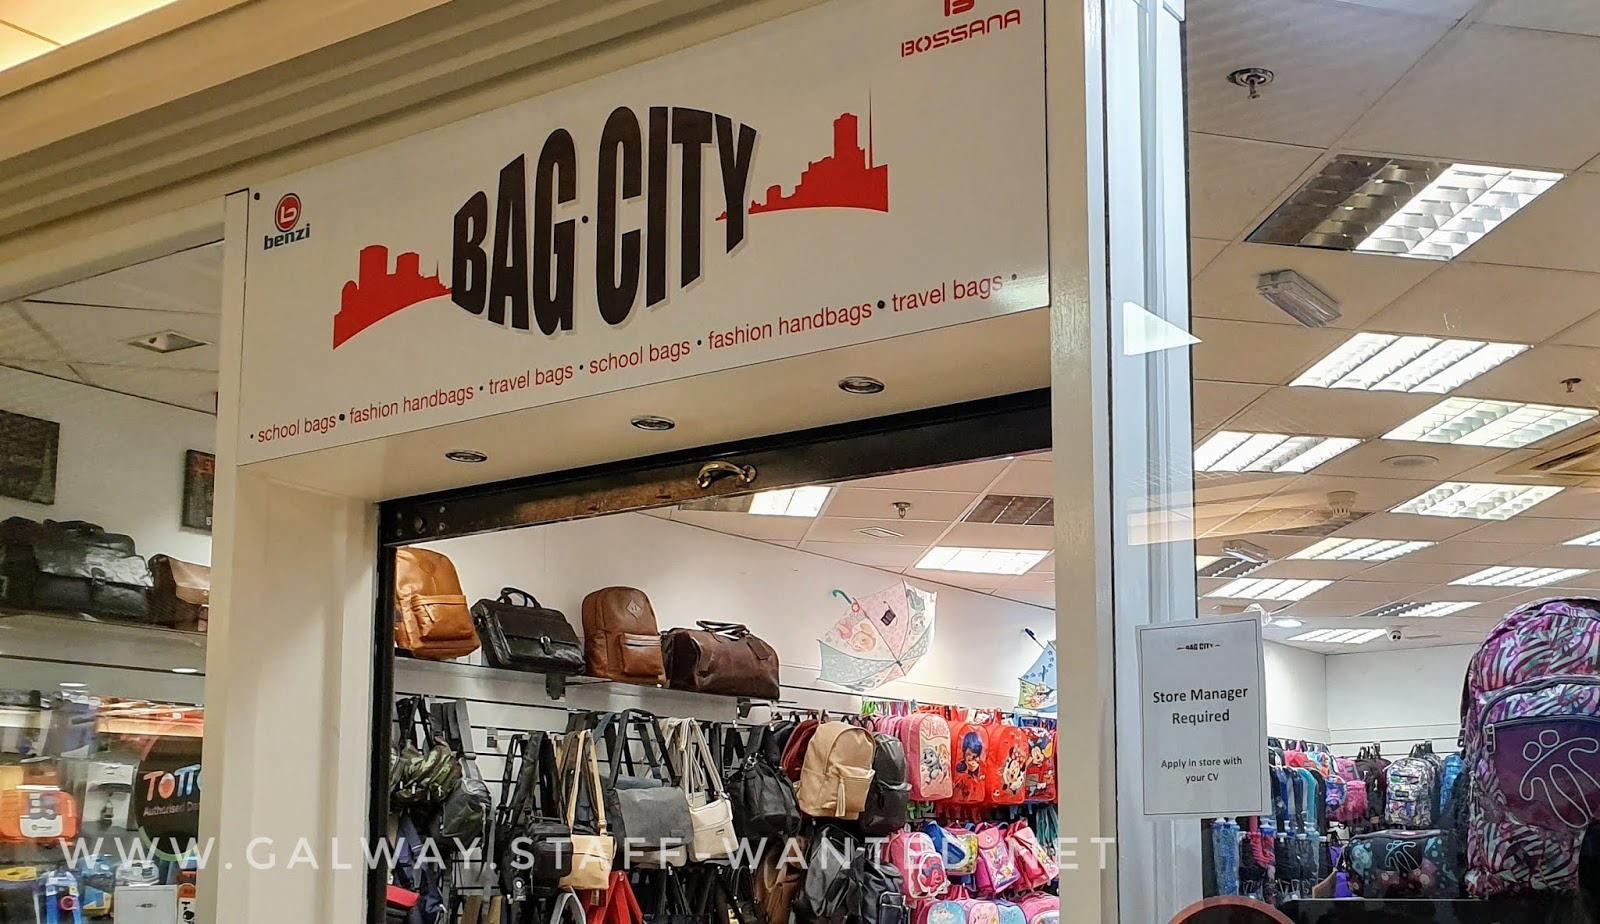 shop front with signage and bags on display:  bag city - schoolbags - fashion handbags - travel bags - Galway city centre - open seven days